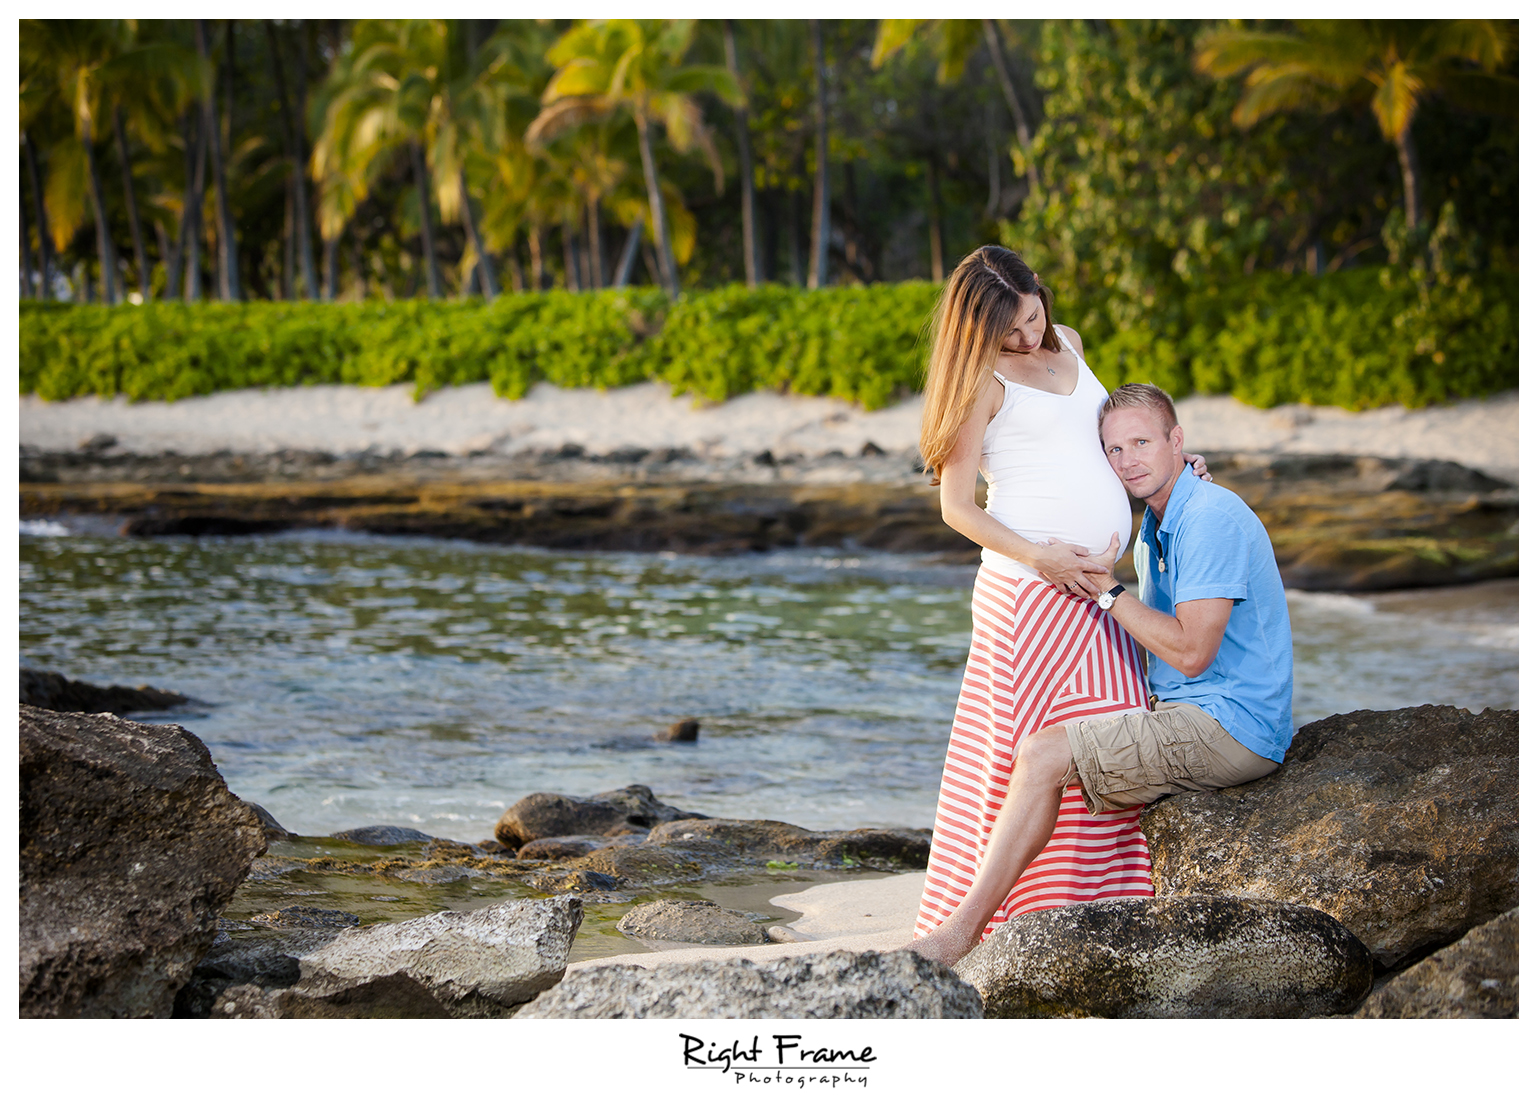 007_Honolulu_Maternity_Photography